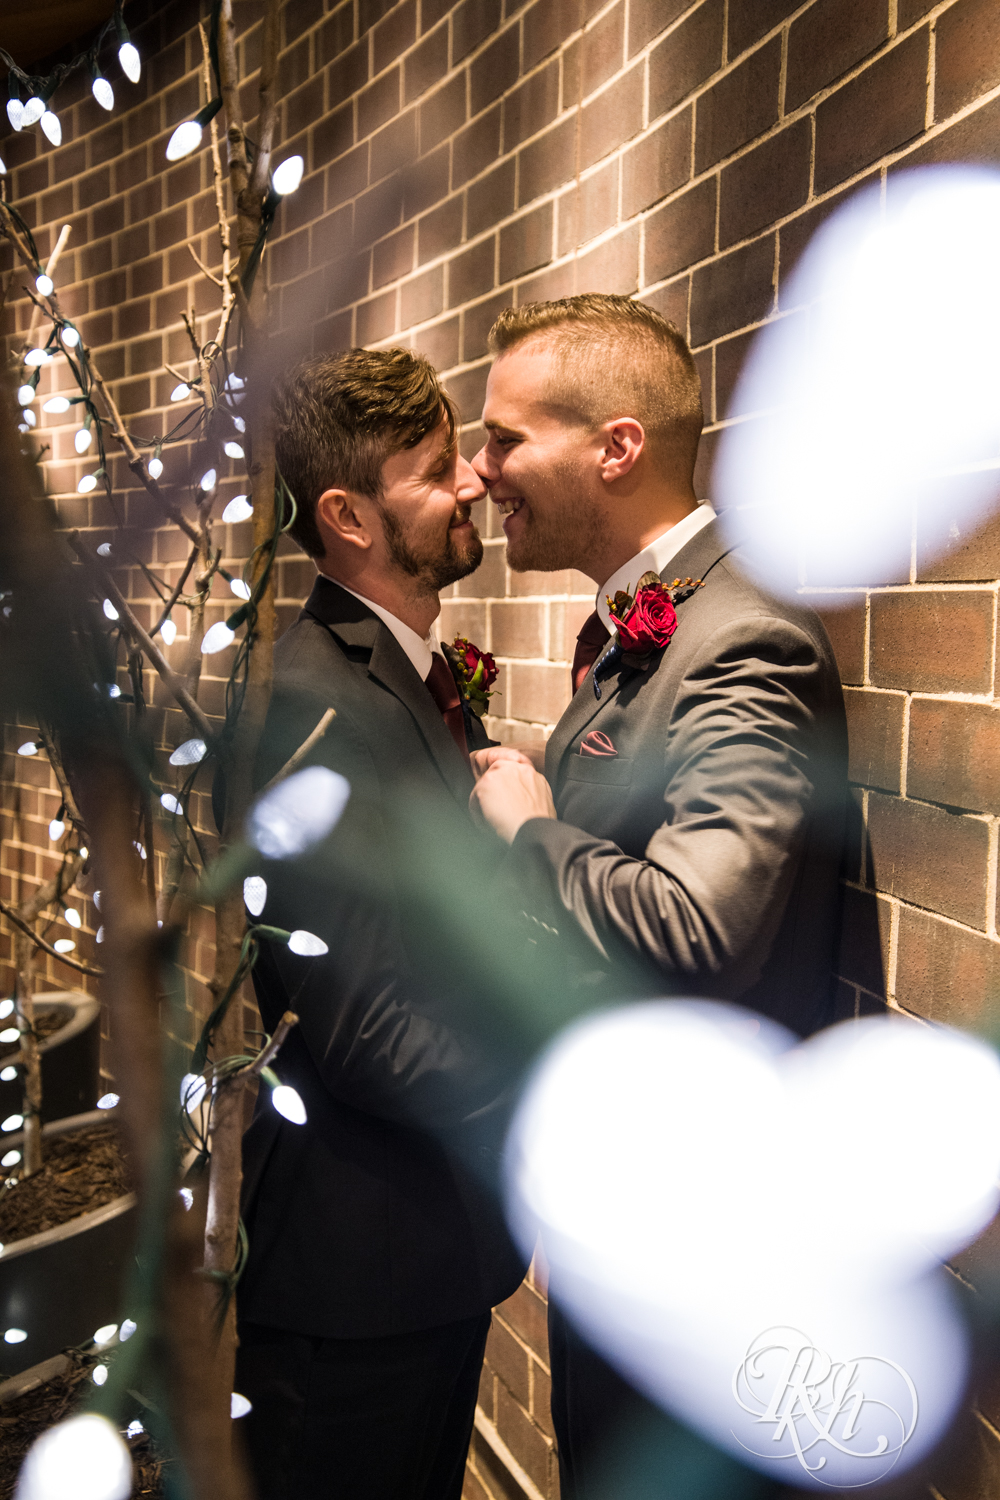 Michael & Darren - Minnesota LGBT Wedding Photography - Courtyard by Marriott Minneapolis - RKH Images - Blog (66 of 67).jpg